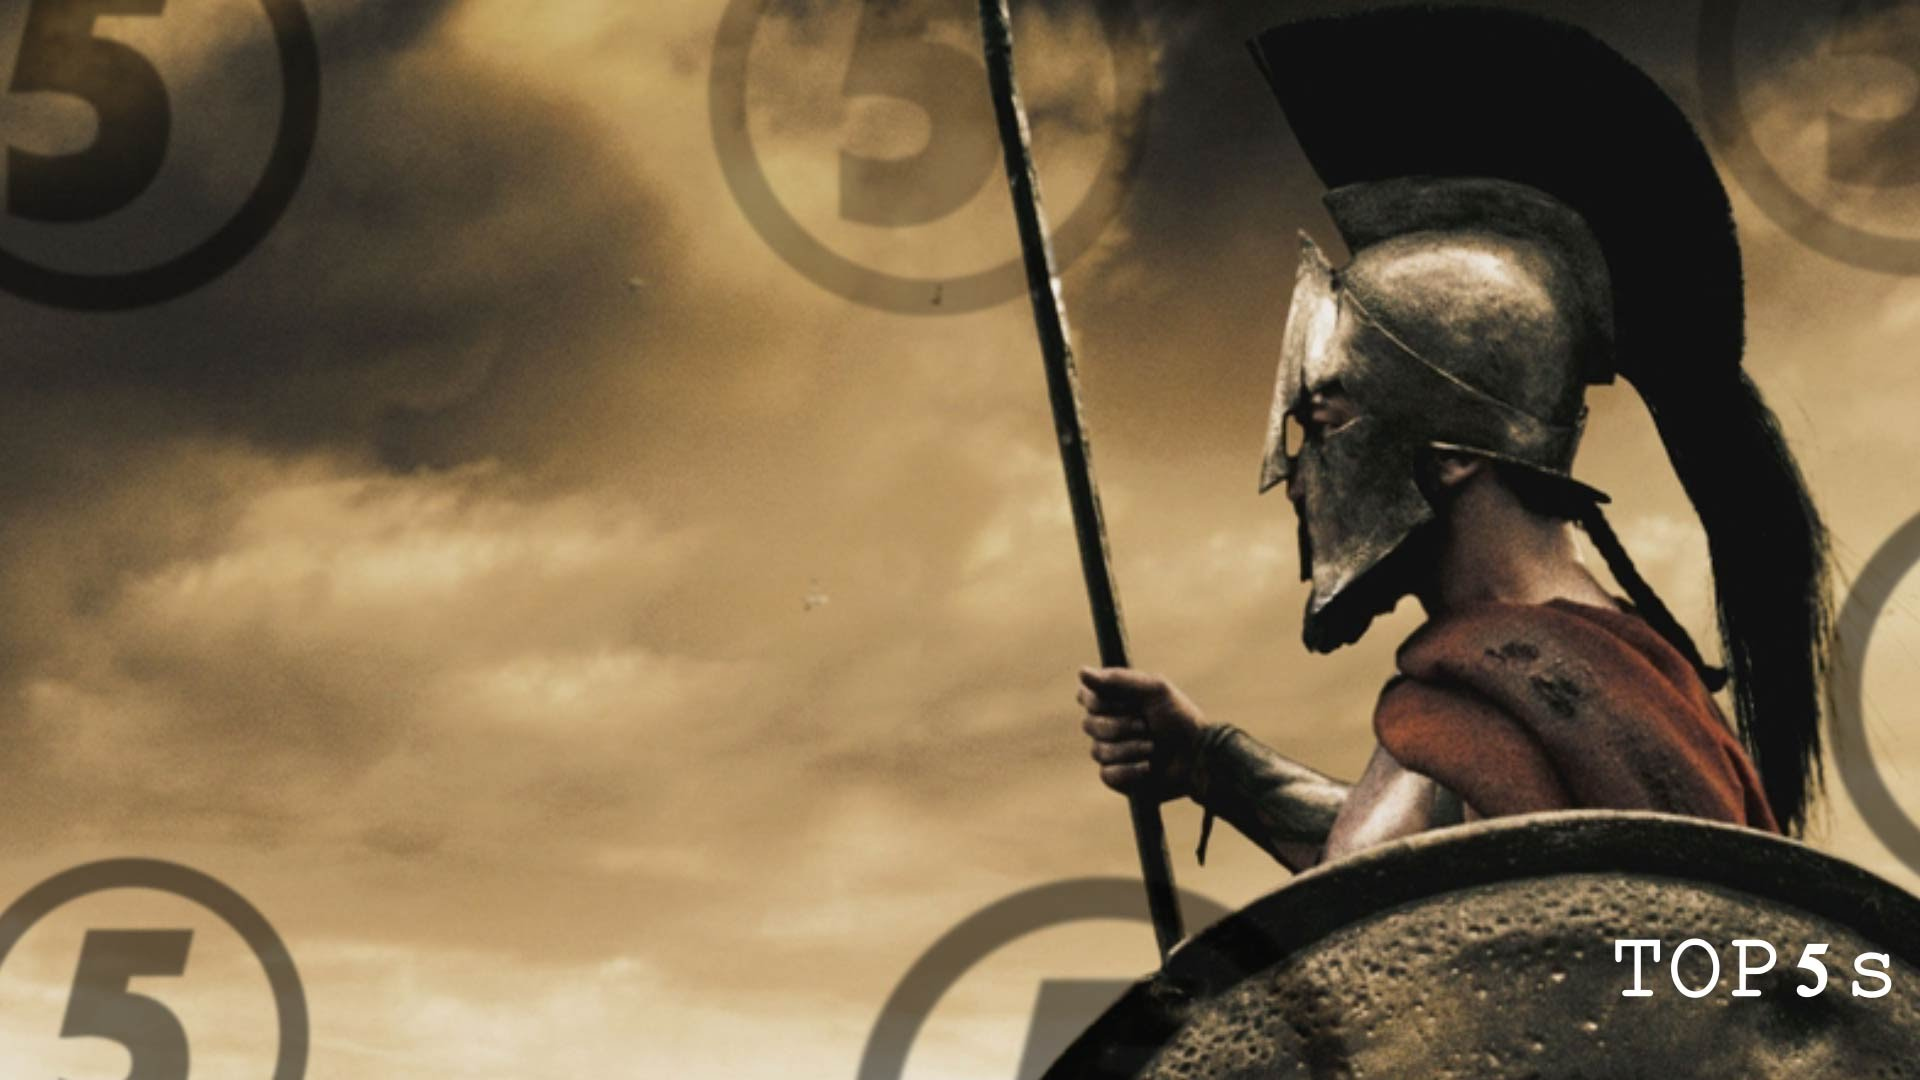 5 Barbaric Facts About The Spartans - YouTube